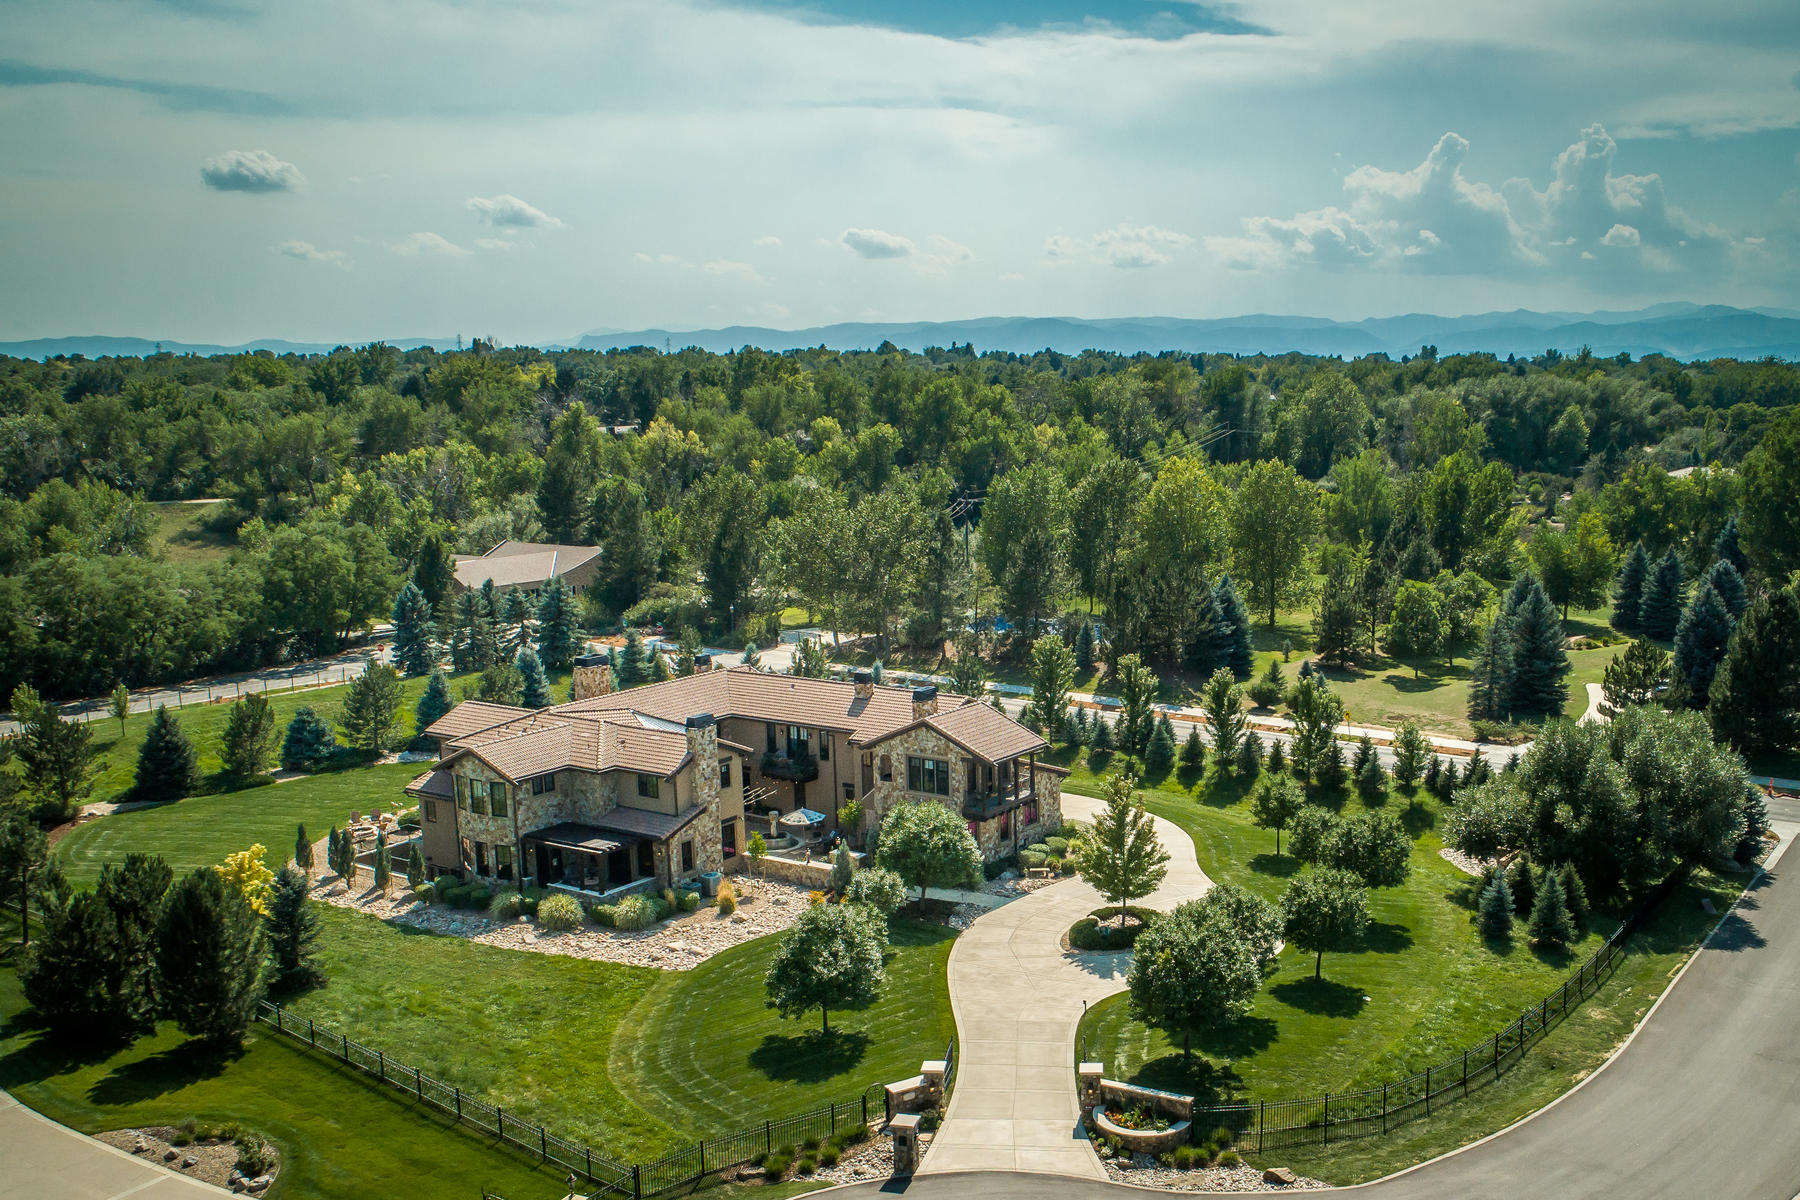 Property for Active at Be swept away in the romance of an Italian villa. 3830 E Fox Trl Greenwood Village, Colorado 80121 United States